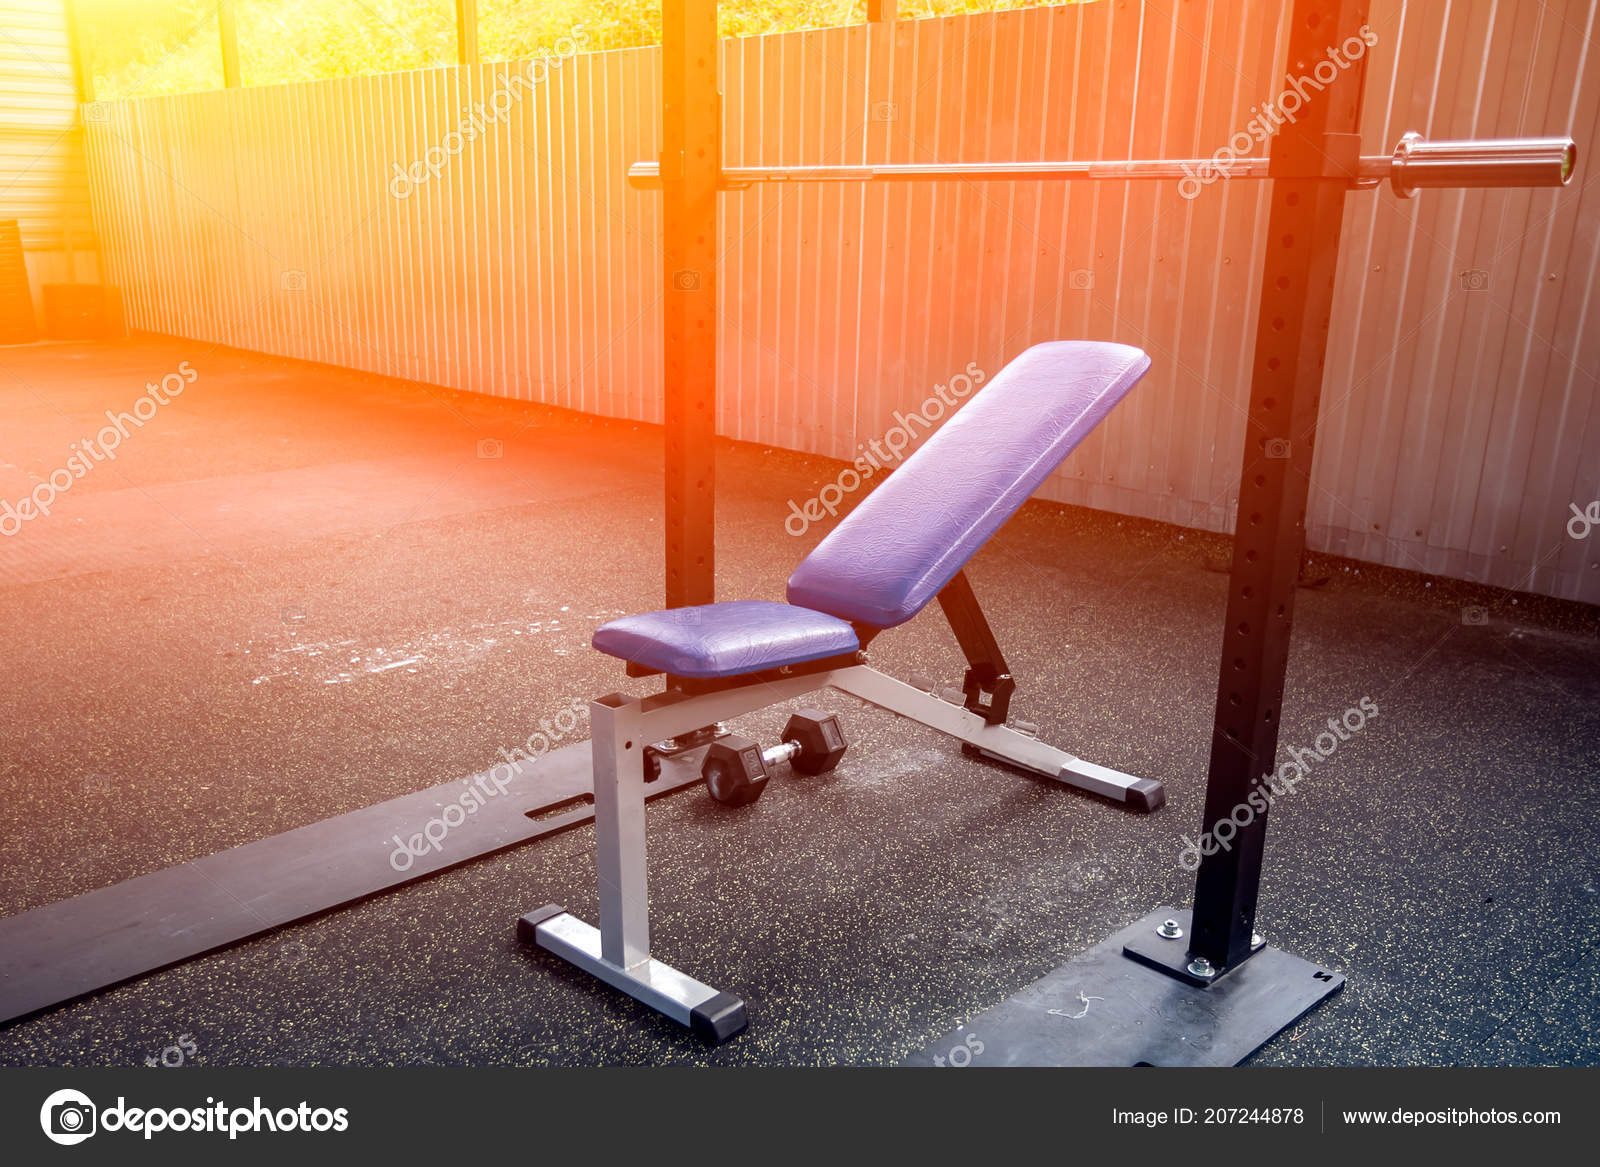 Cool Close Metal Simulator Form Bench Blue Seat Bench Press Bar Gmtry Best Dining Table And Chair Ideas Images Gmtryco